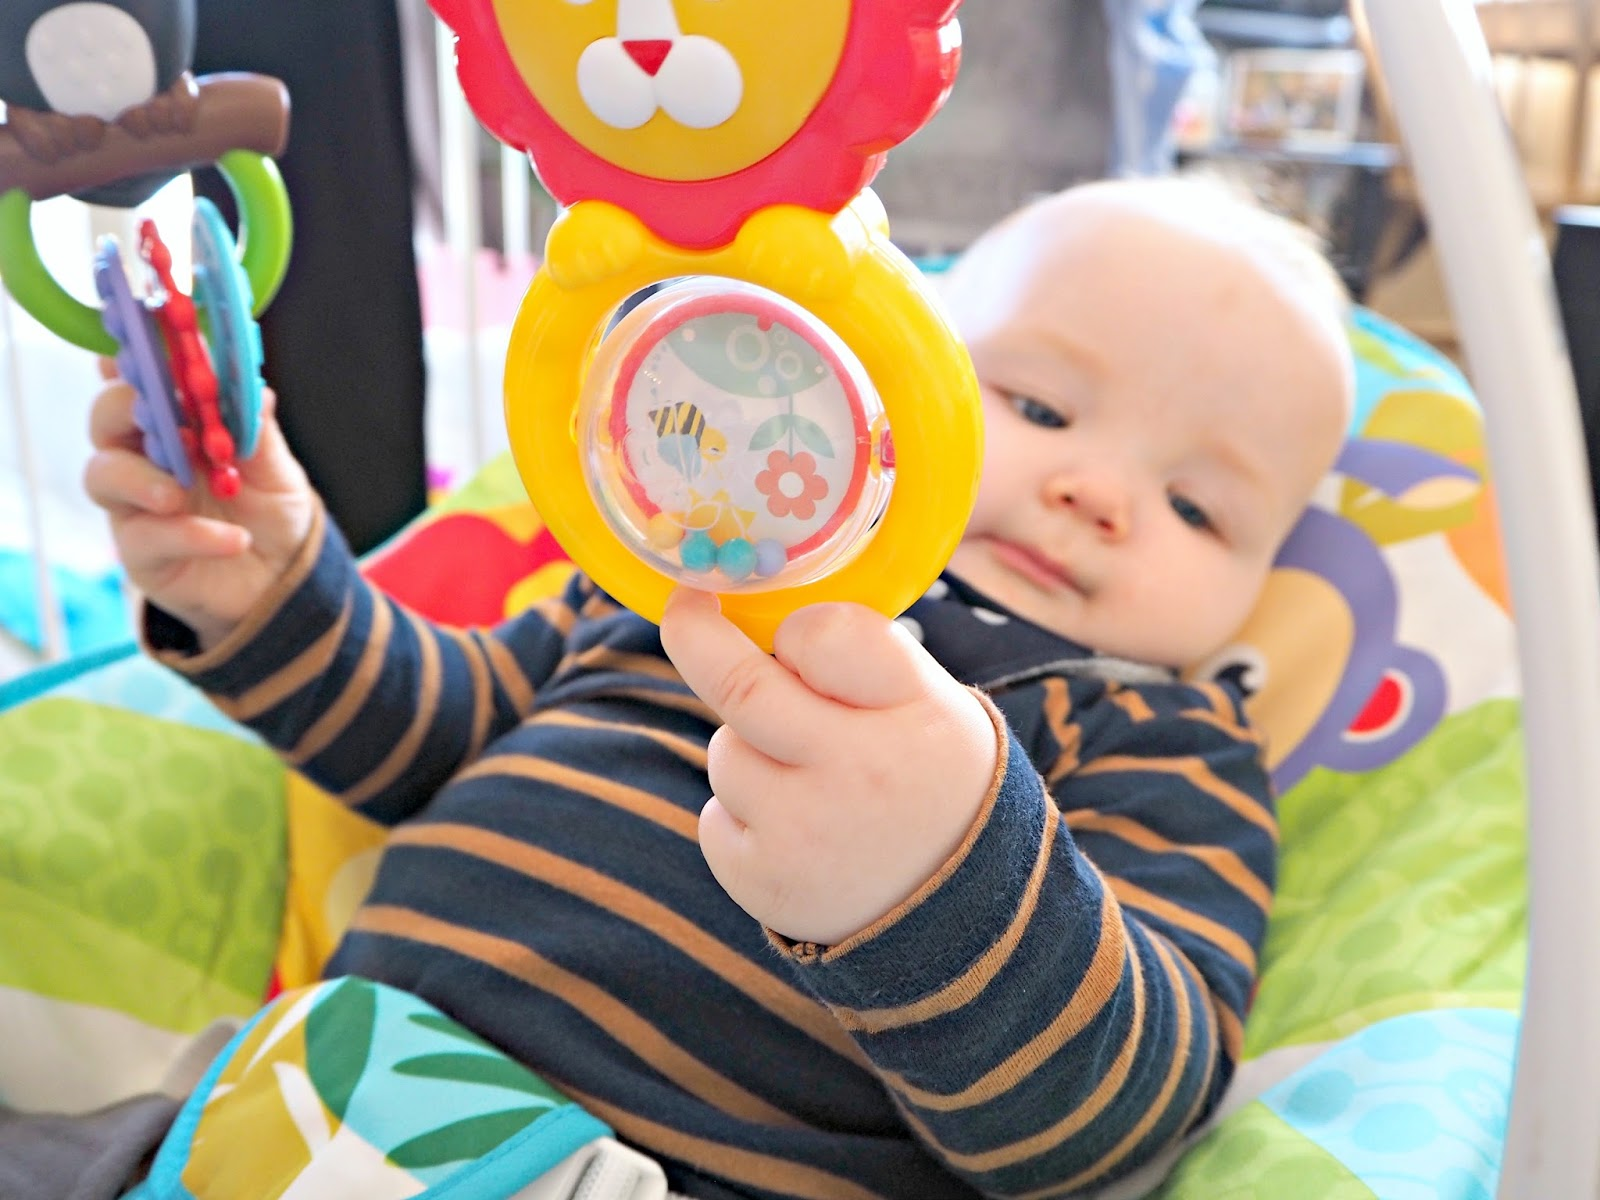 THE BABY ROCKER THAT YOU NEED FOR YOUR LITTLE ONE | Fisher-Price | Love, Maisie | www.lovemaisie.com